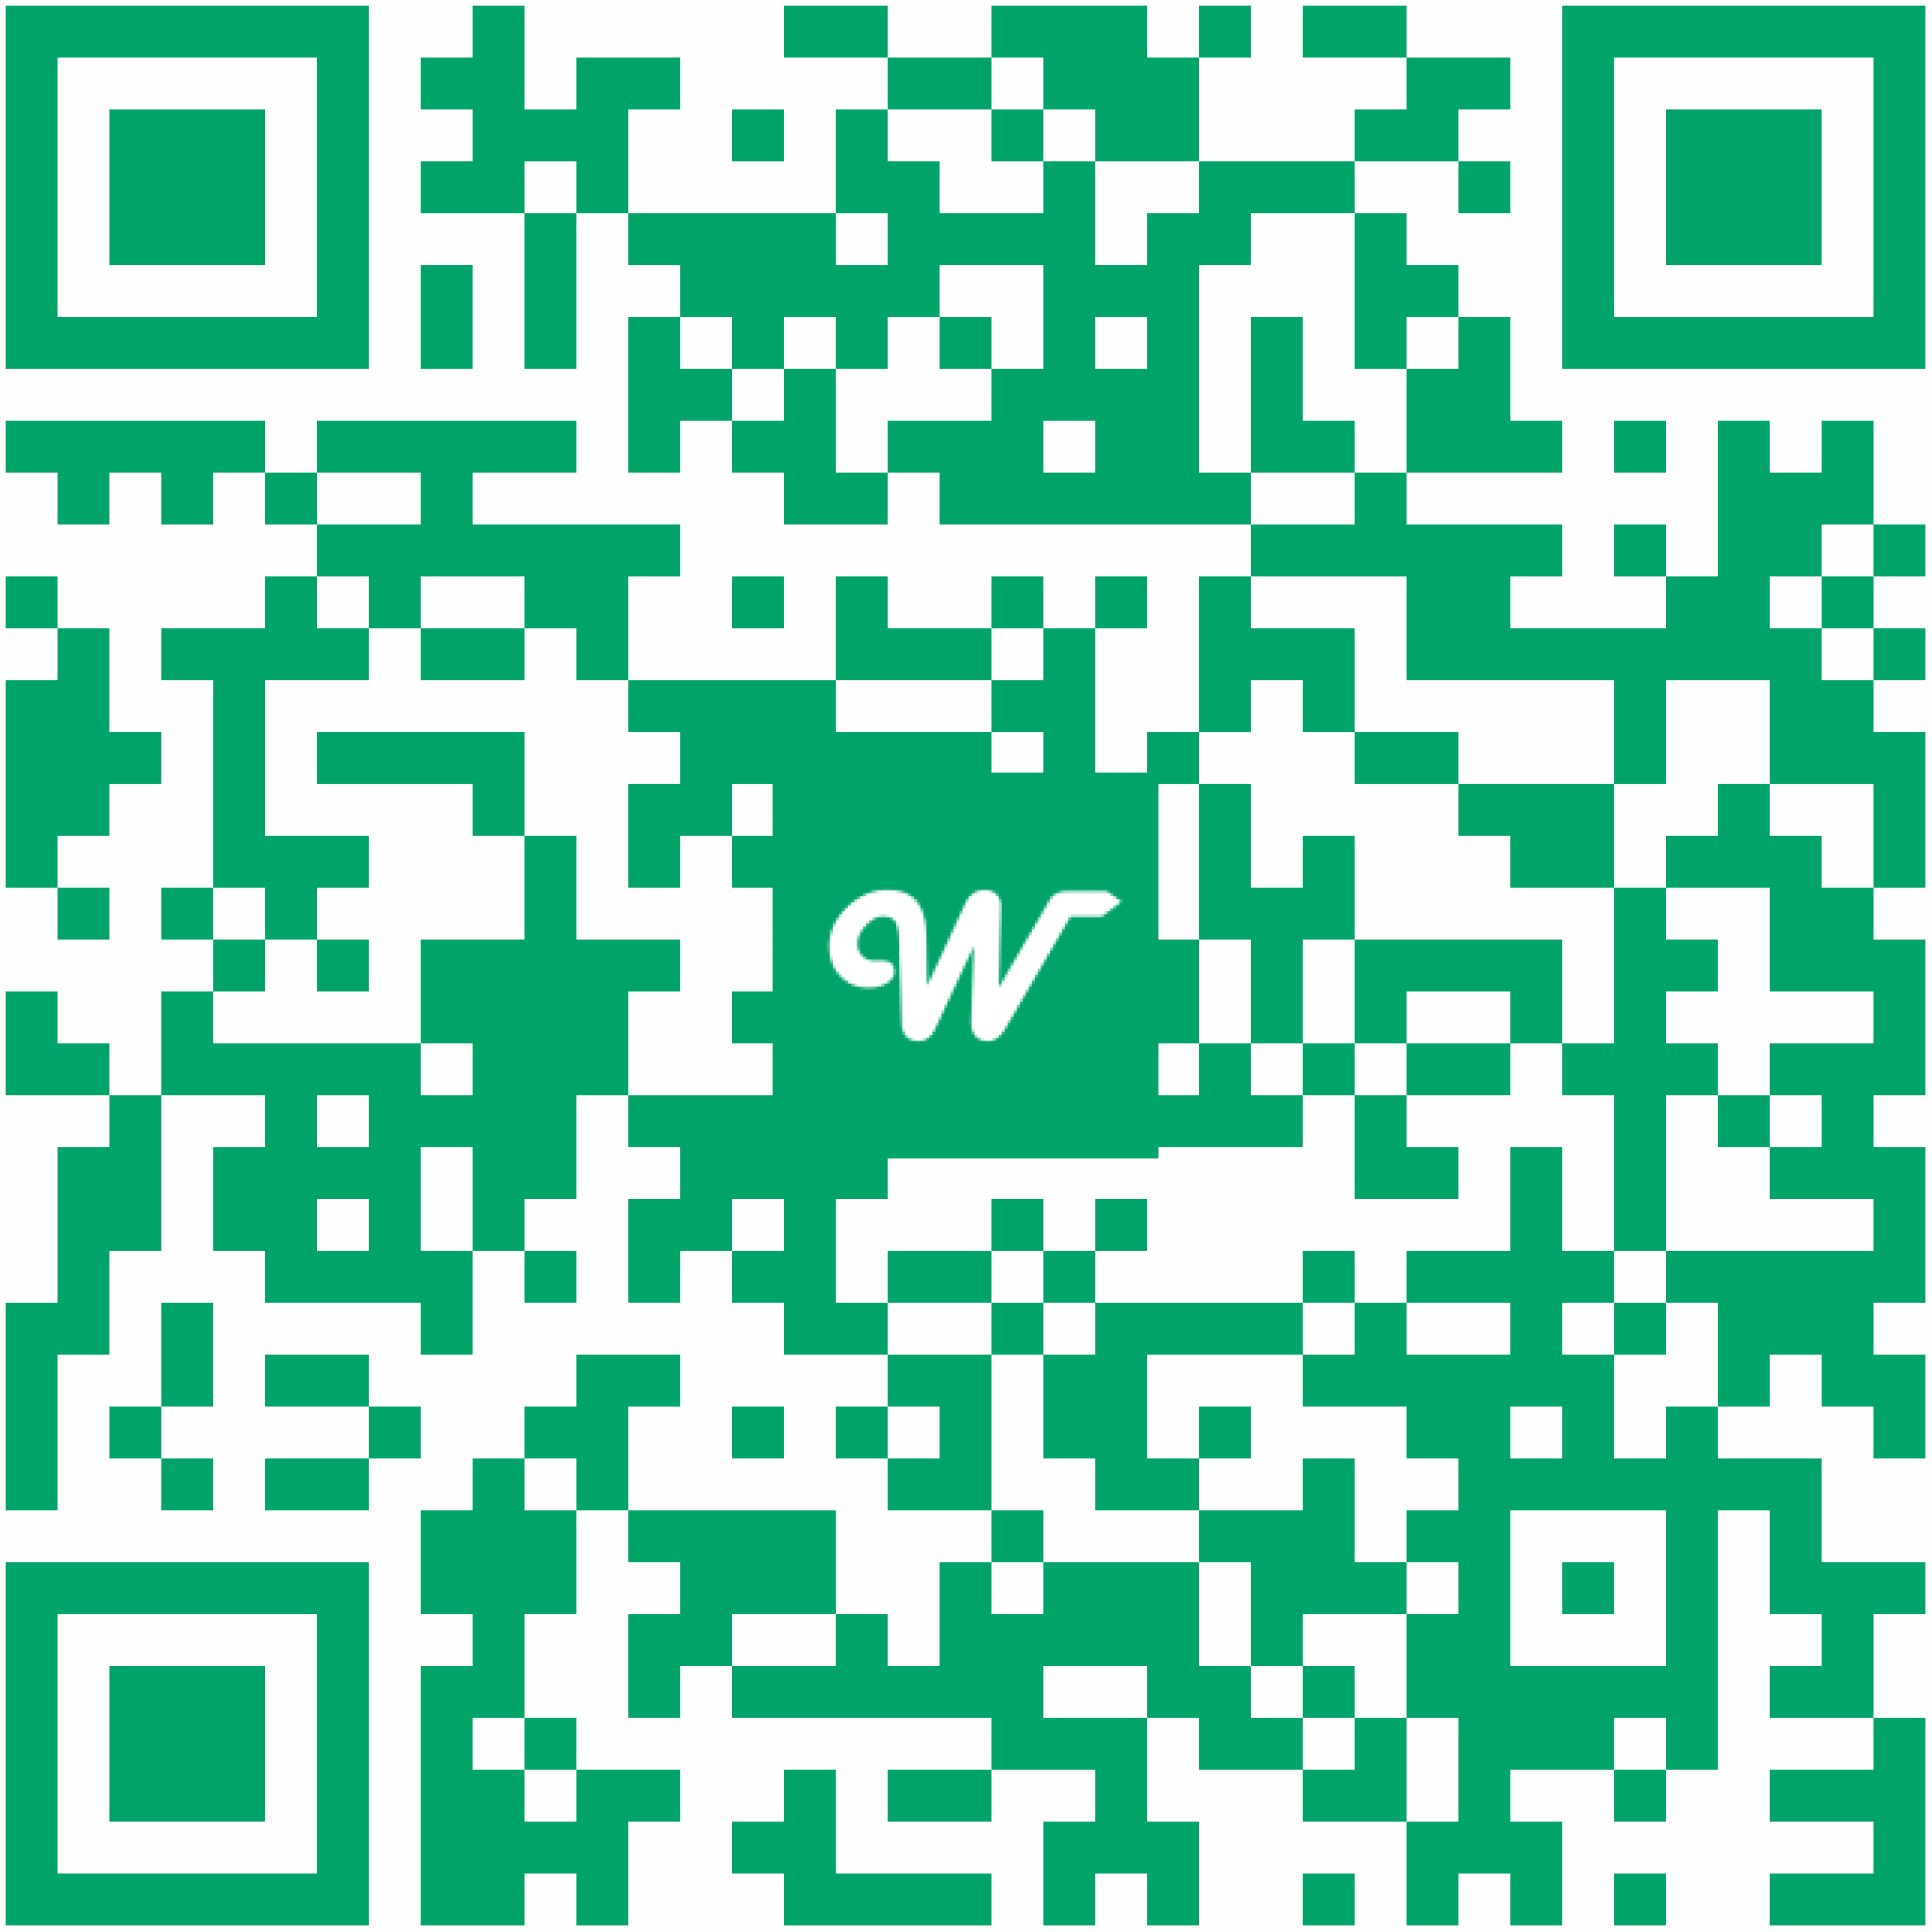 Printable QR code for R. Mato Grosso, 306